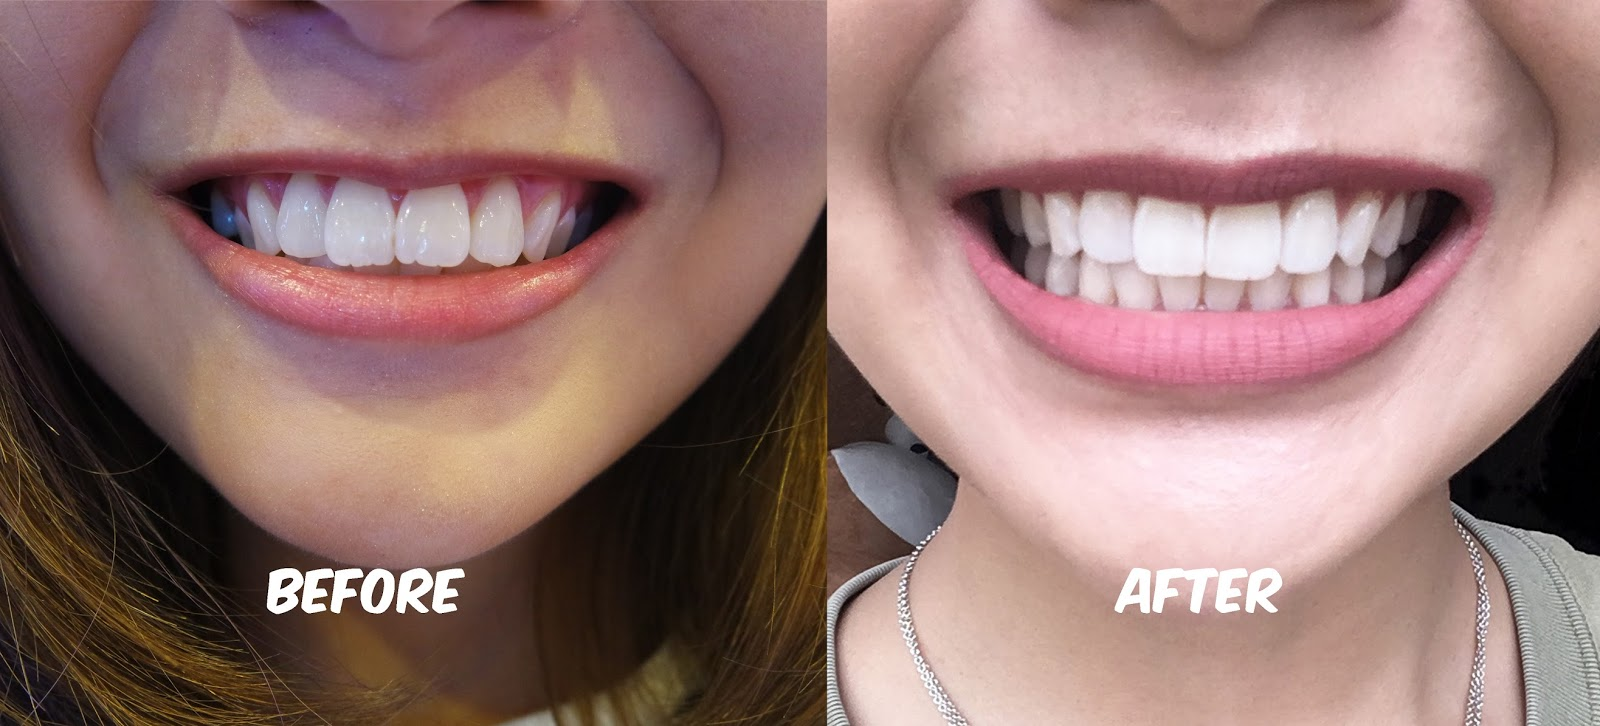 Get straight teeth - We Shaved Off The Uneven Bottom Outline Of My Two Front Teeth Leaving Me A Super Straight Looking Teeth